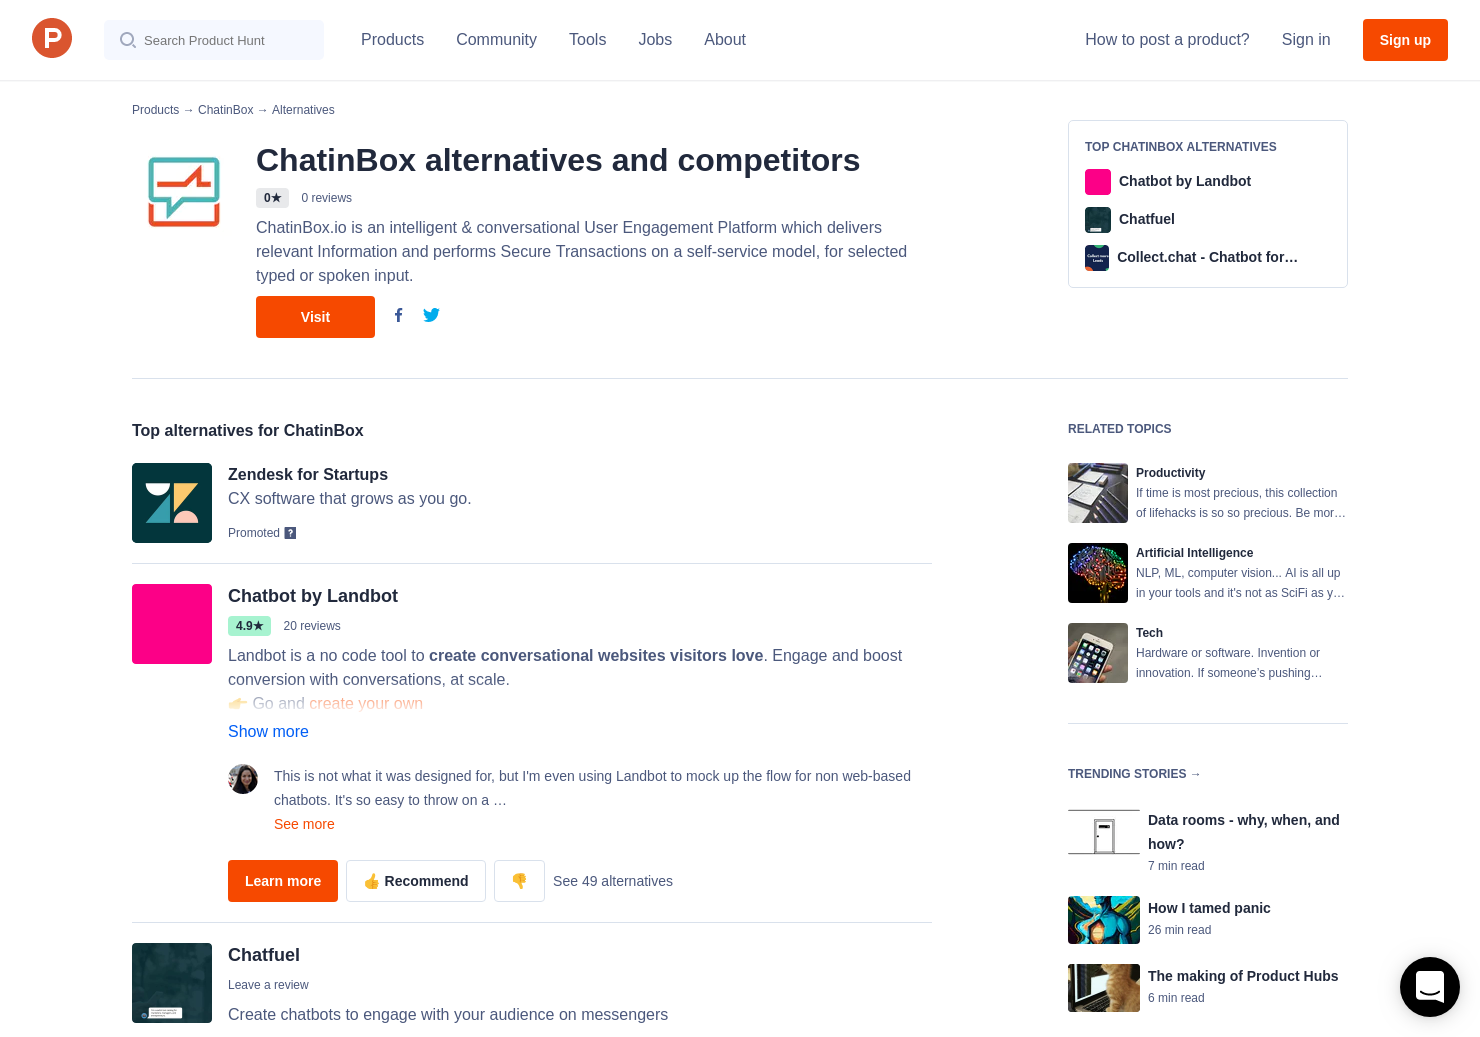 4 Alternatives to ChatinBox | Product Hunt